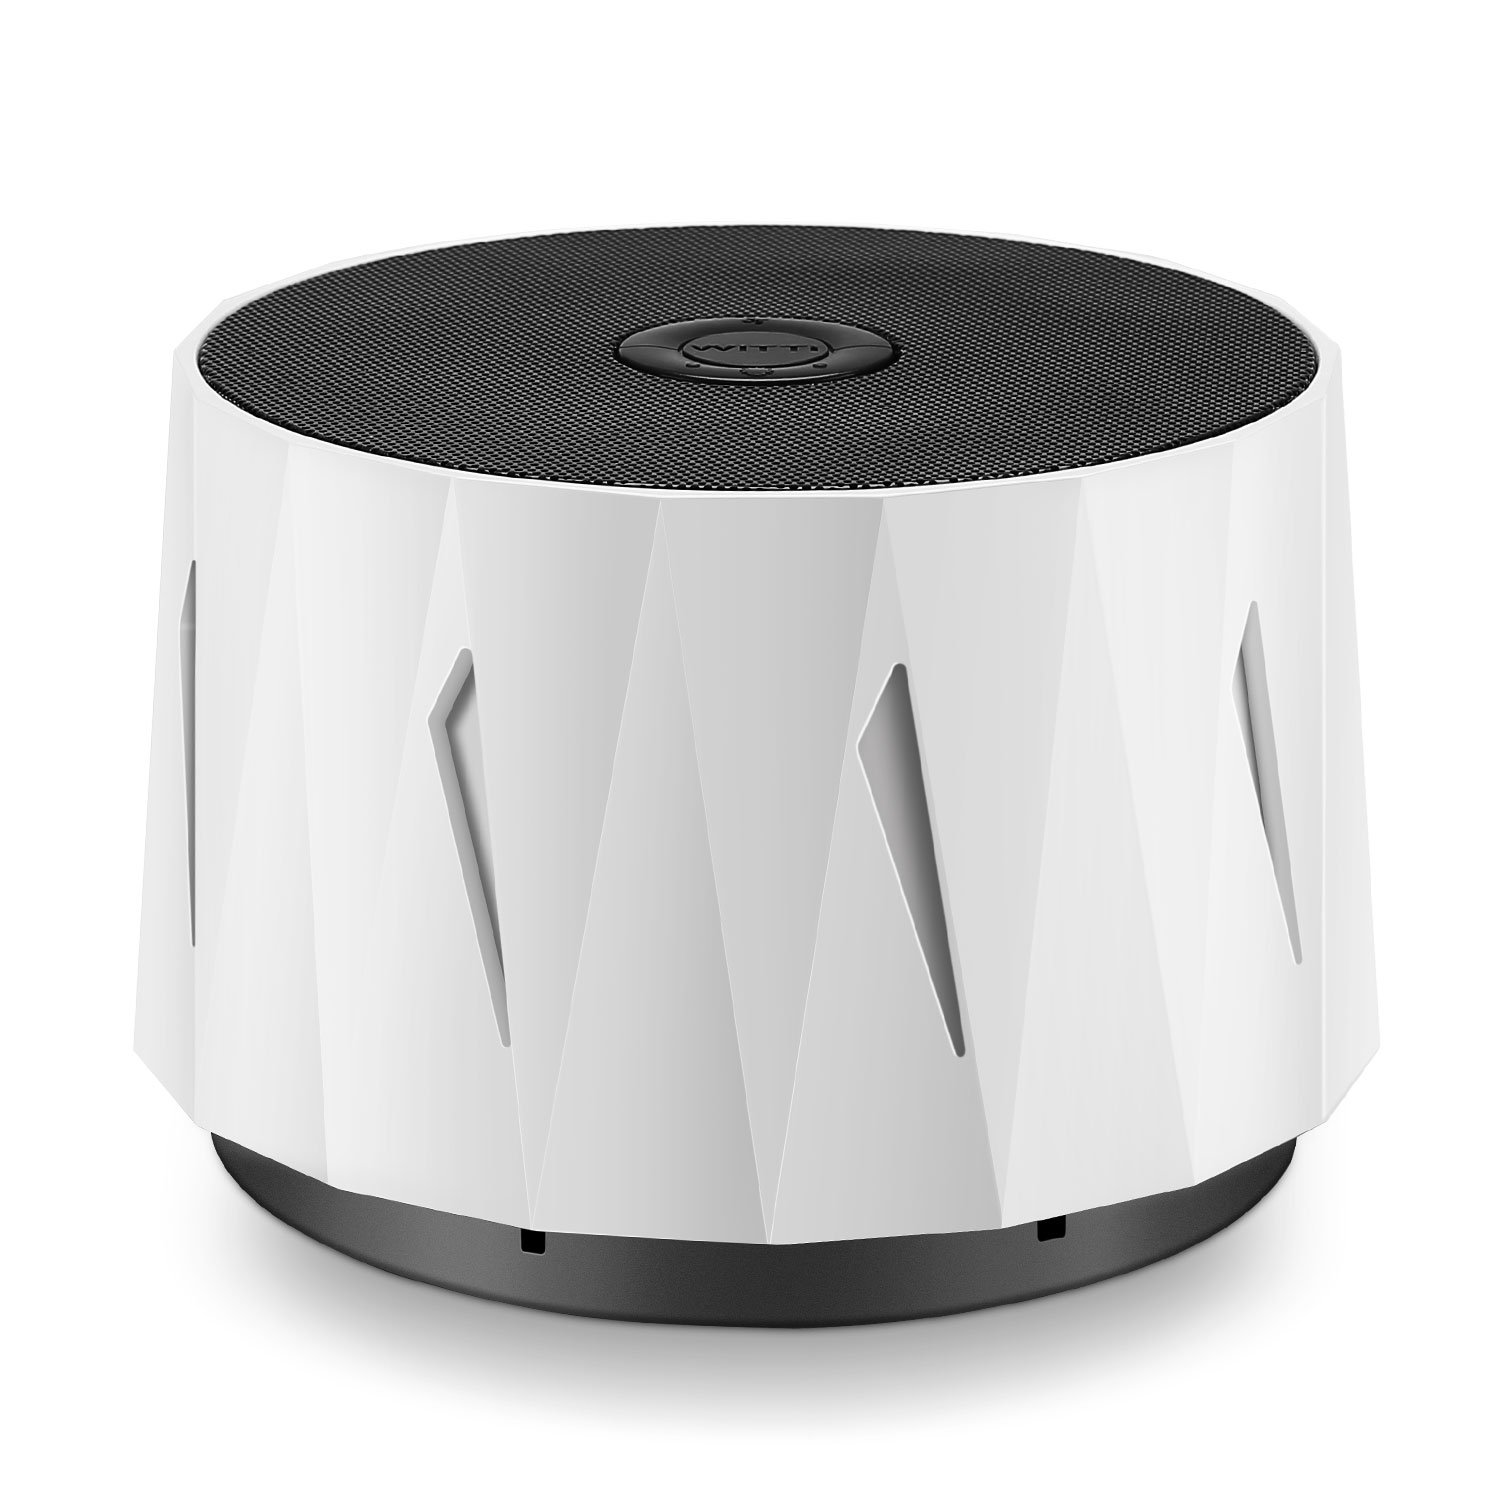 WITTI DOZZI | White Noise Noise Machine for Baby, Sleeping, Office Privacy. Lightweight Portable for Travel, Hotel Sleep. Natural White Noises maker, Set Tone & Fan Volume sleep gadgets Sleep Gadgets – A Smart Way to Sleep Better To Enjoy a Healthy Day 71Xjj5xtl1L